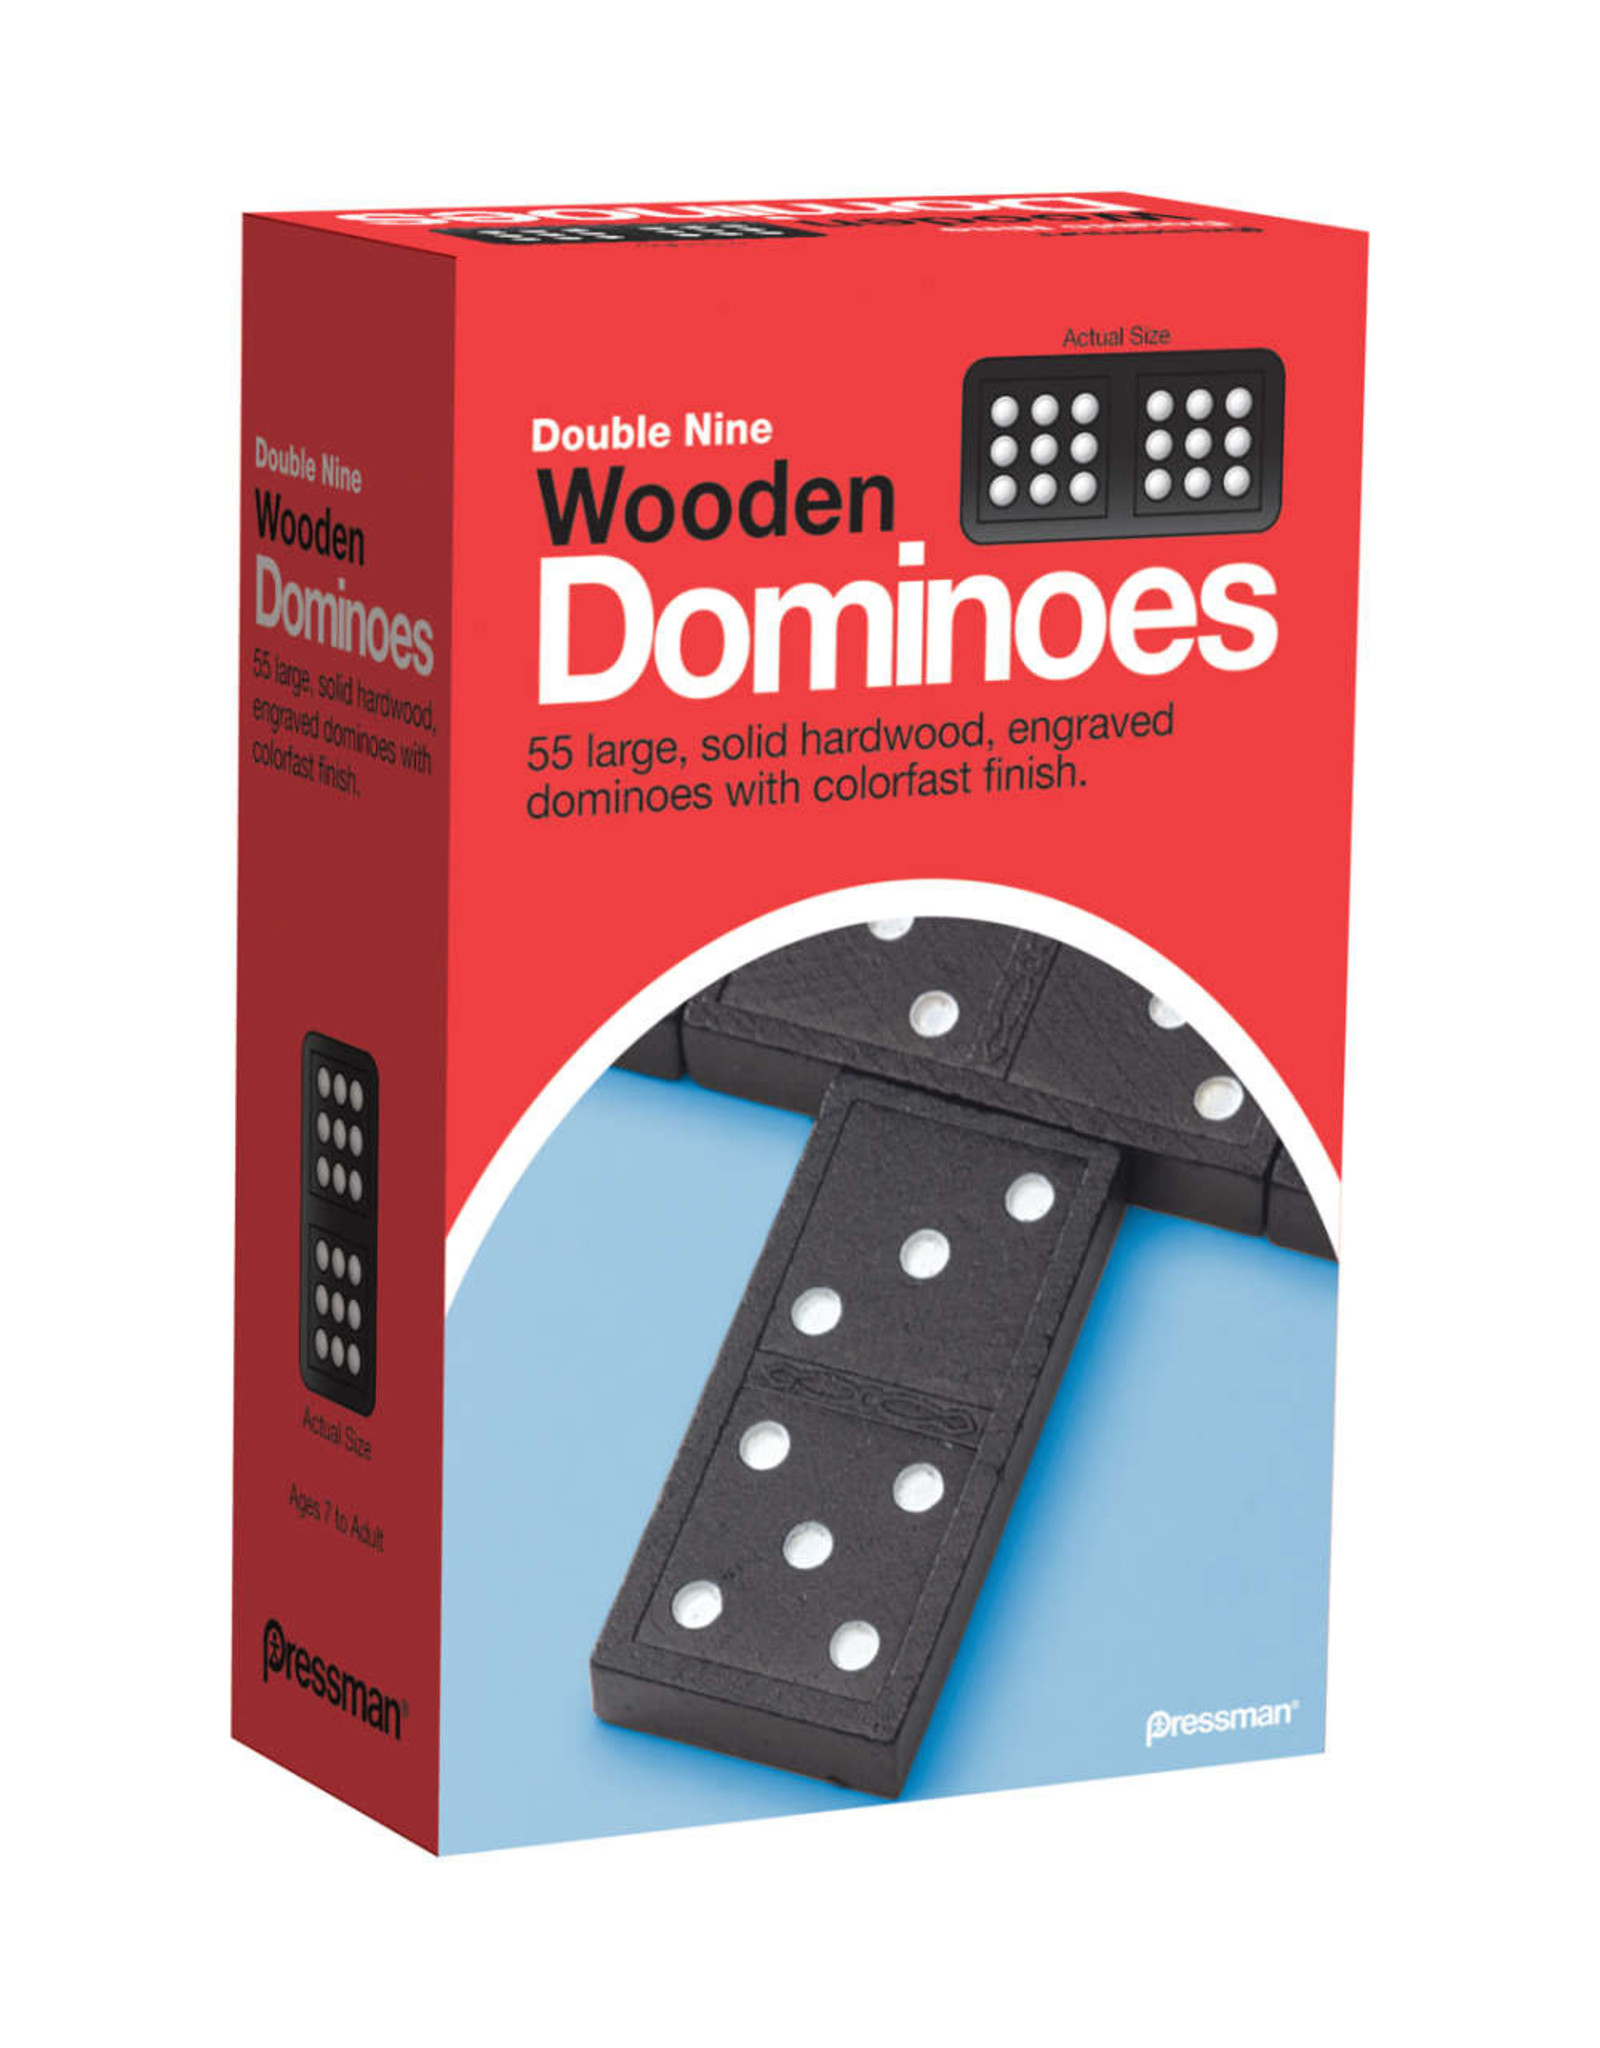 Goliath Dominoes: Double Nine Wooden Dominoes